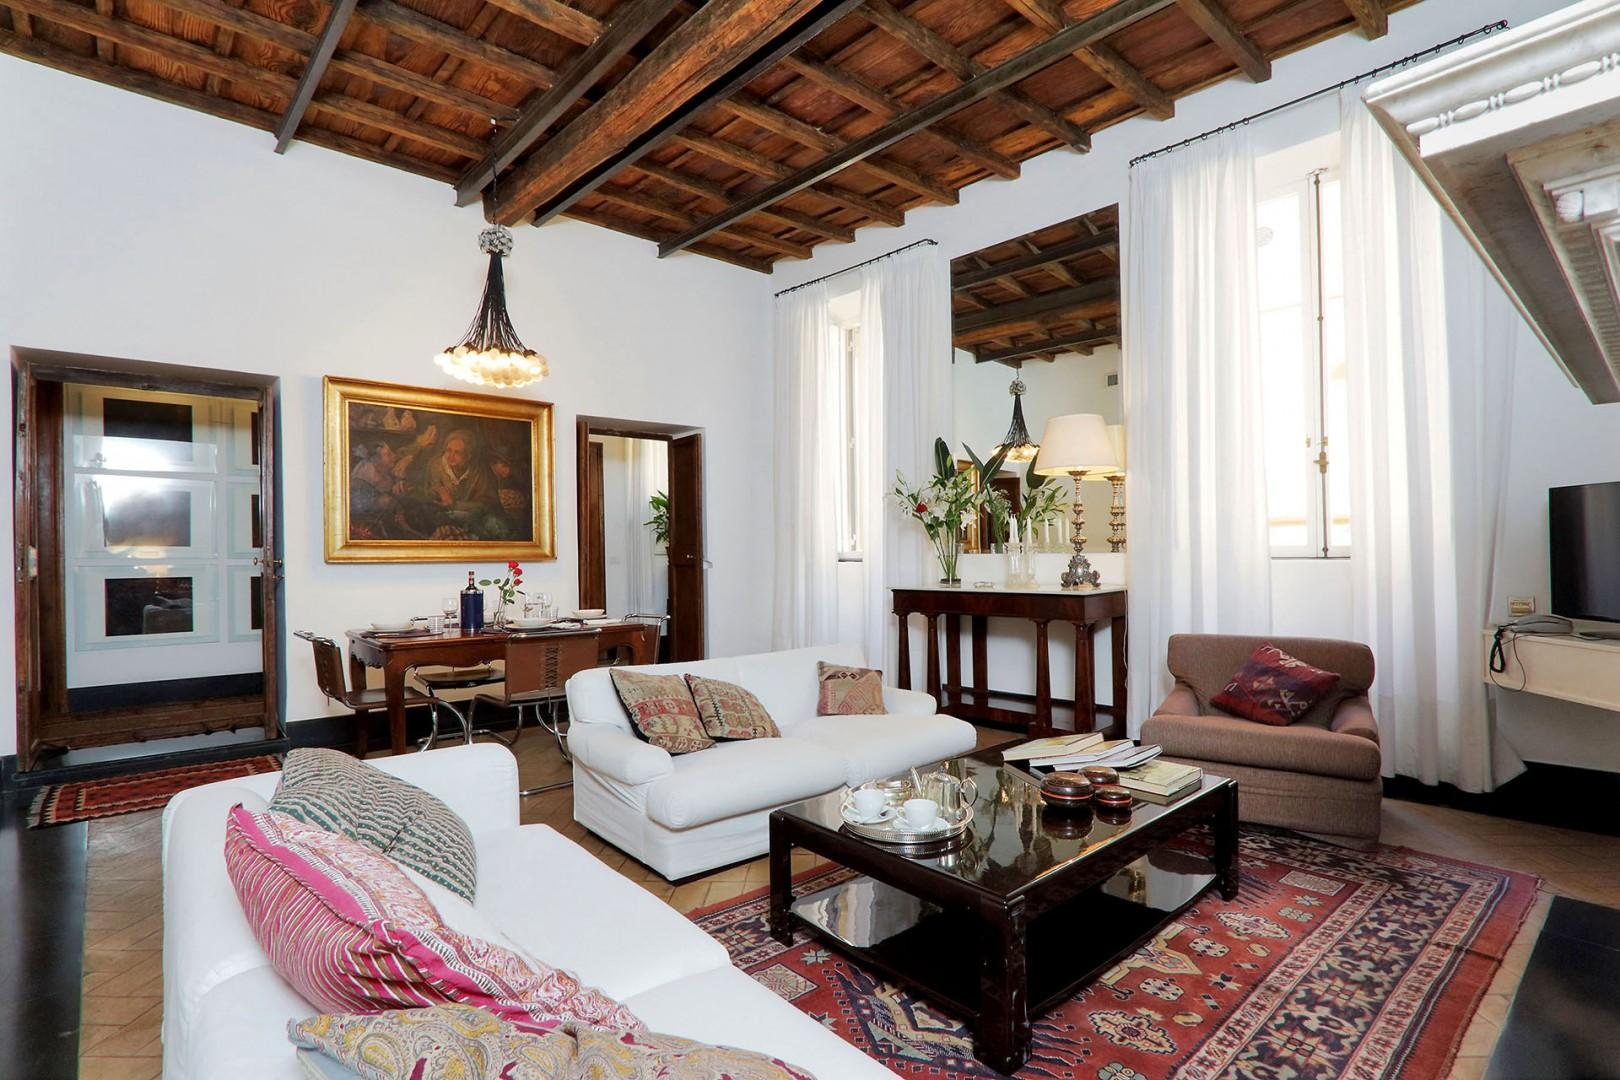 The large living room is filled with light from two large windows which overlook Via Bocca di Leone.